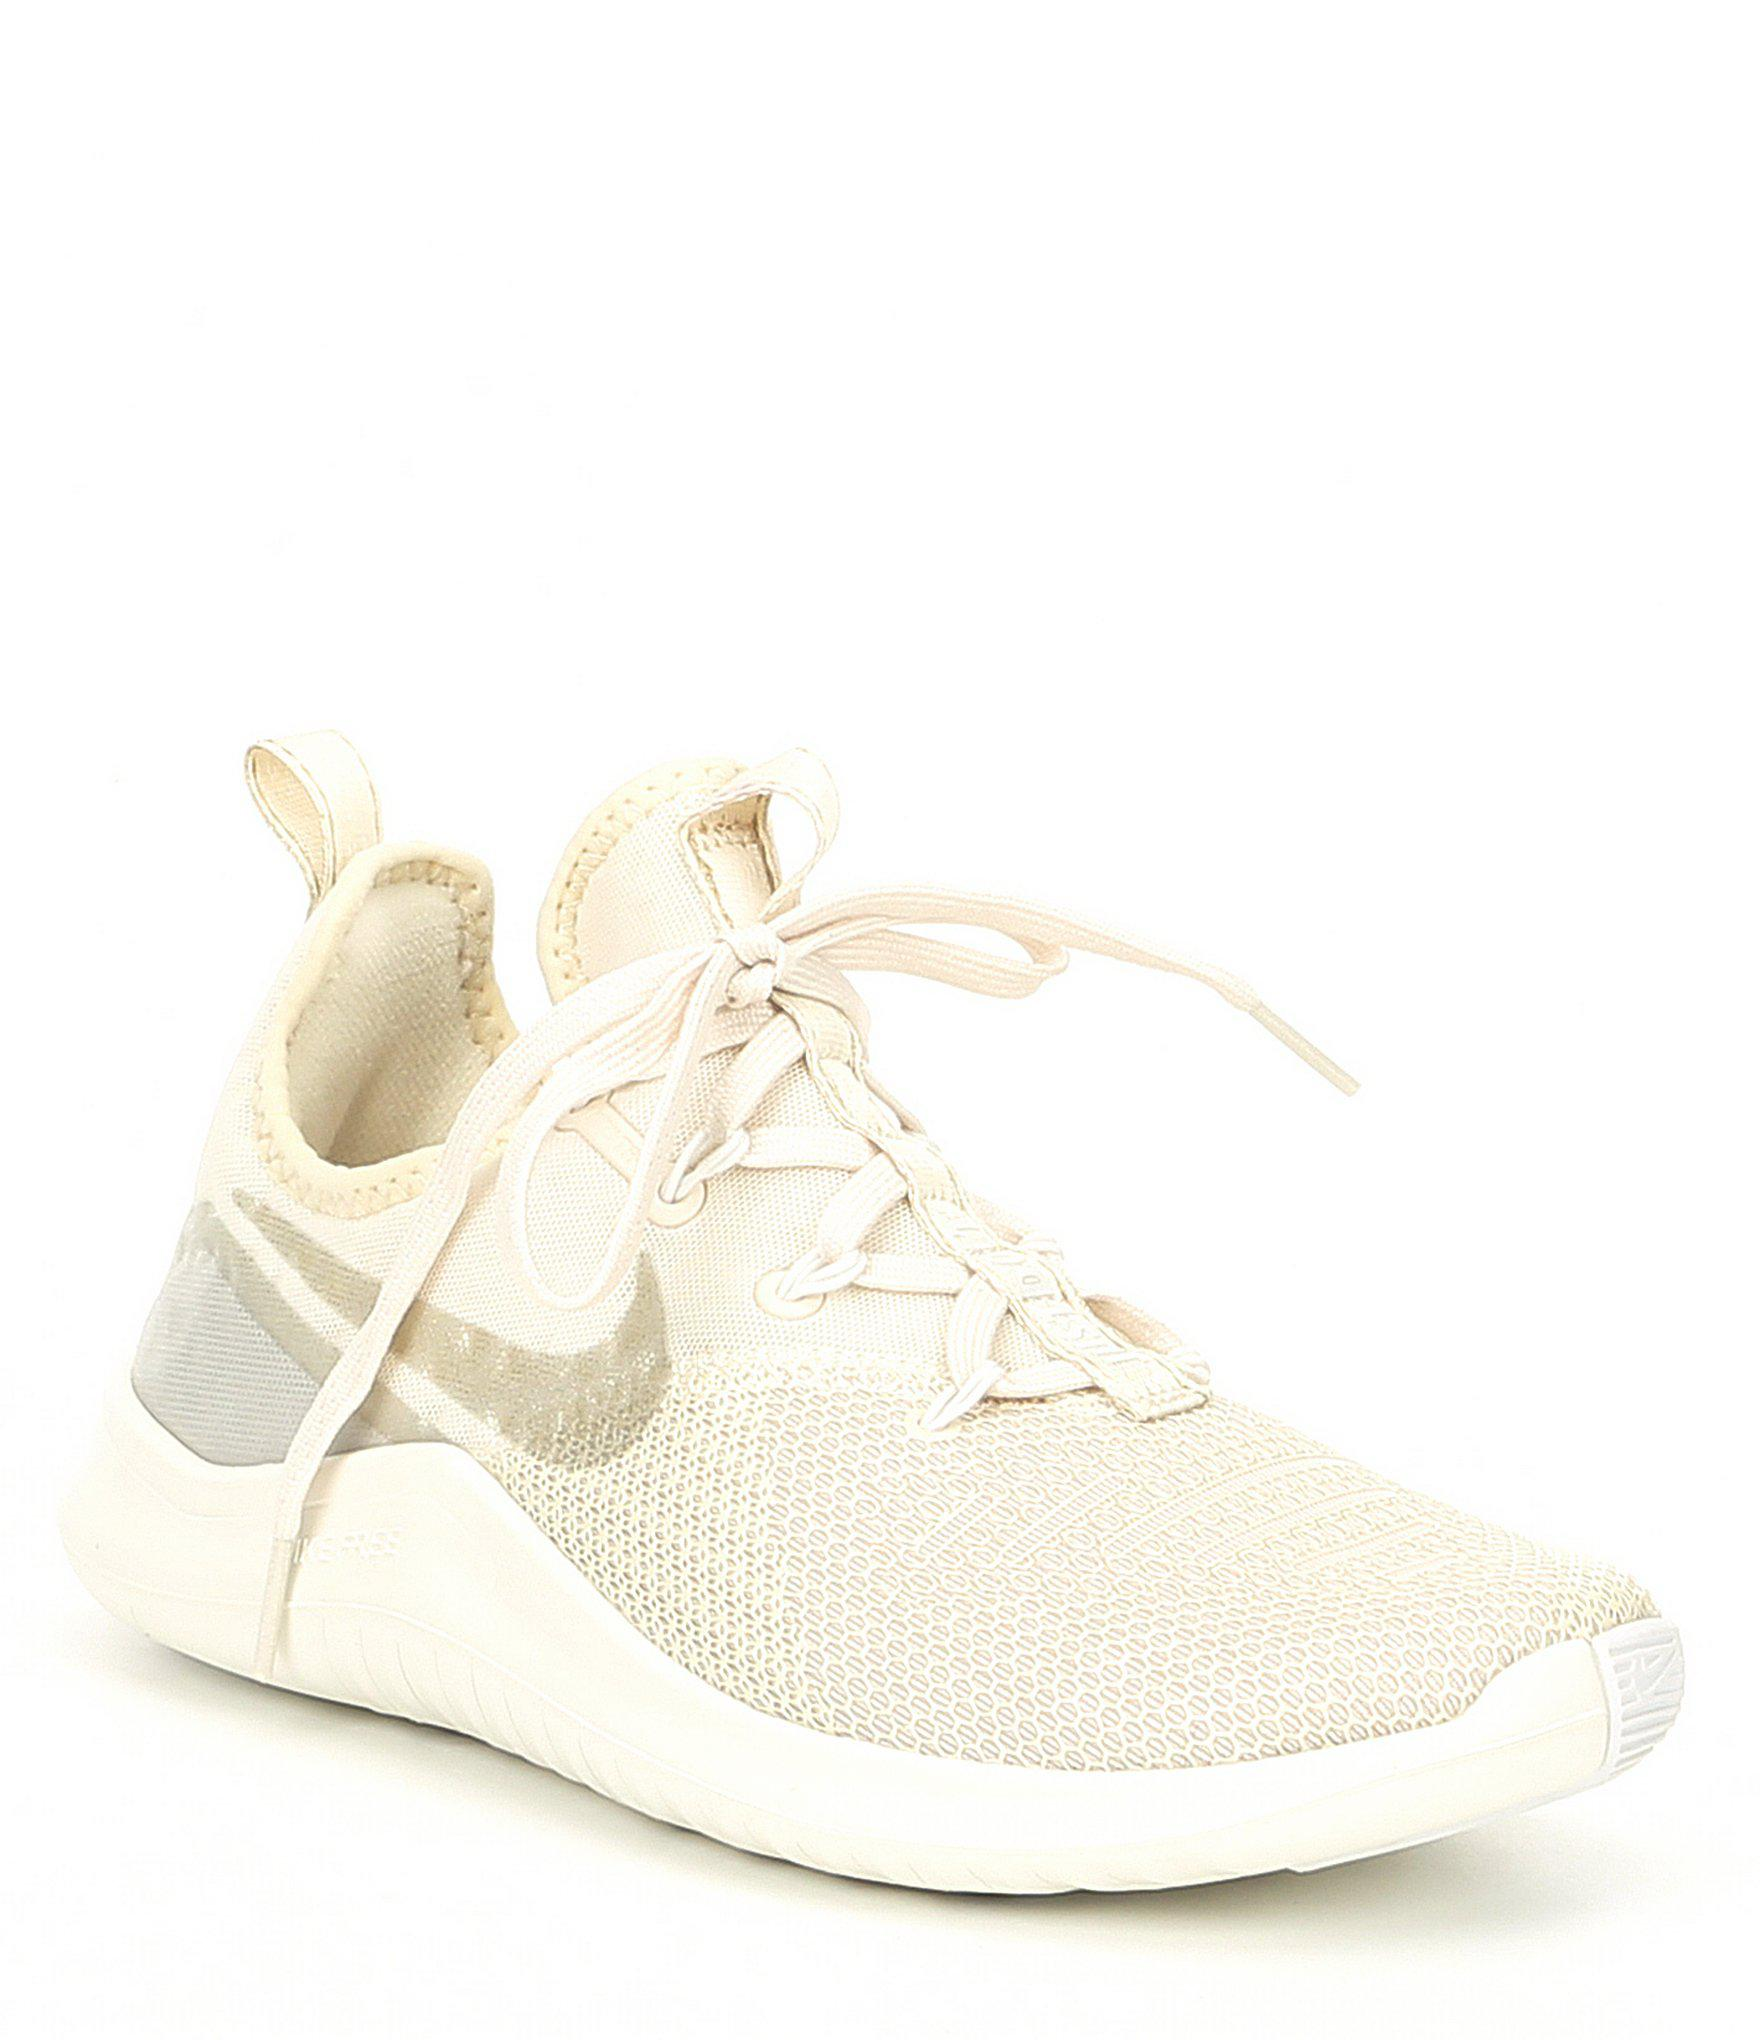 8e8f6212c3e Lyst - Nike Women s Free Tr 8 Training Shoe in Natural